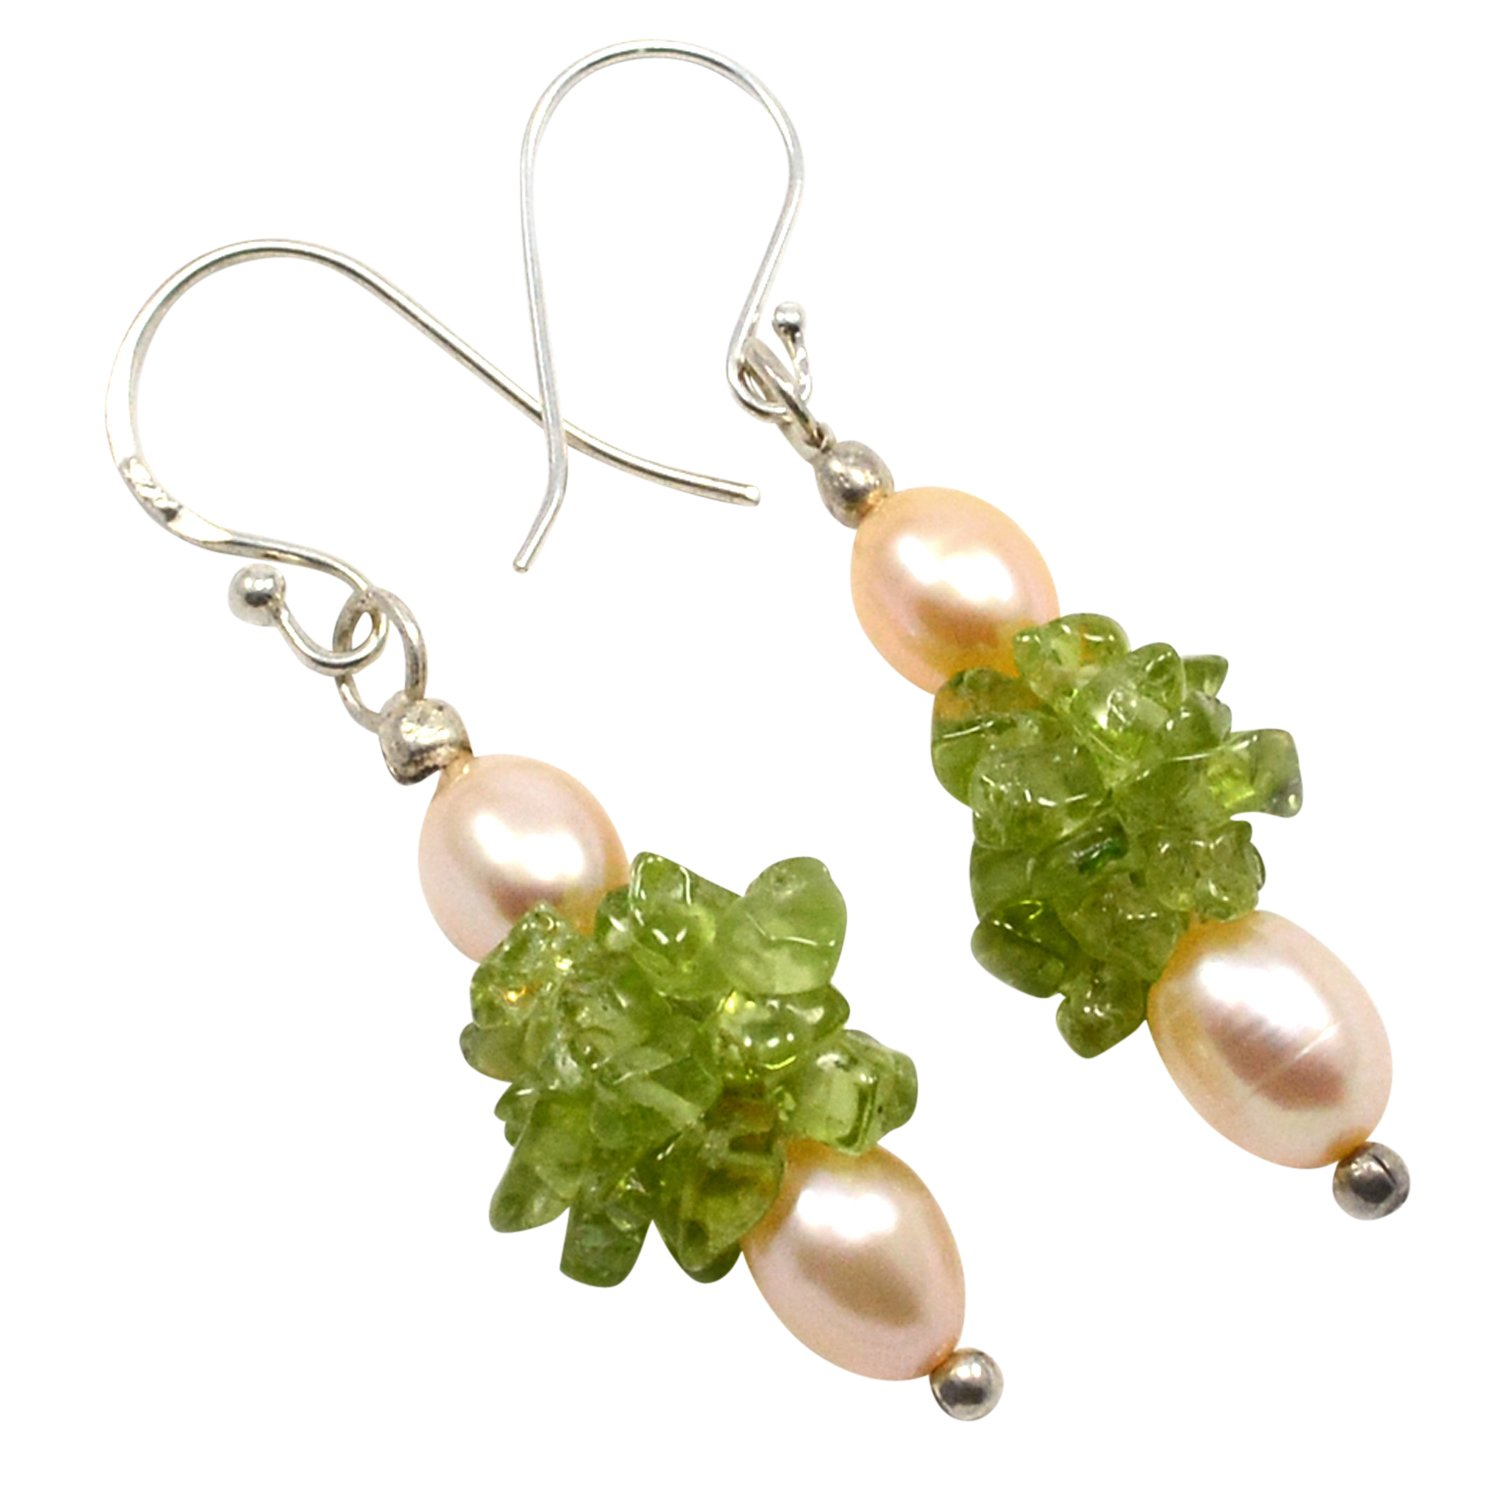 Saamarth Impex Peridot /& Pearl Gemstone 925 Sterling Silver Dangle Earring PG-105361